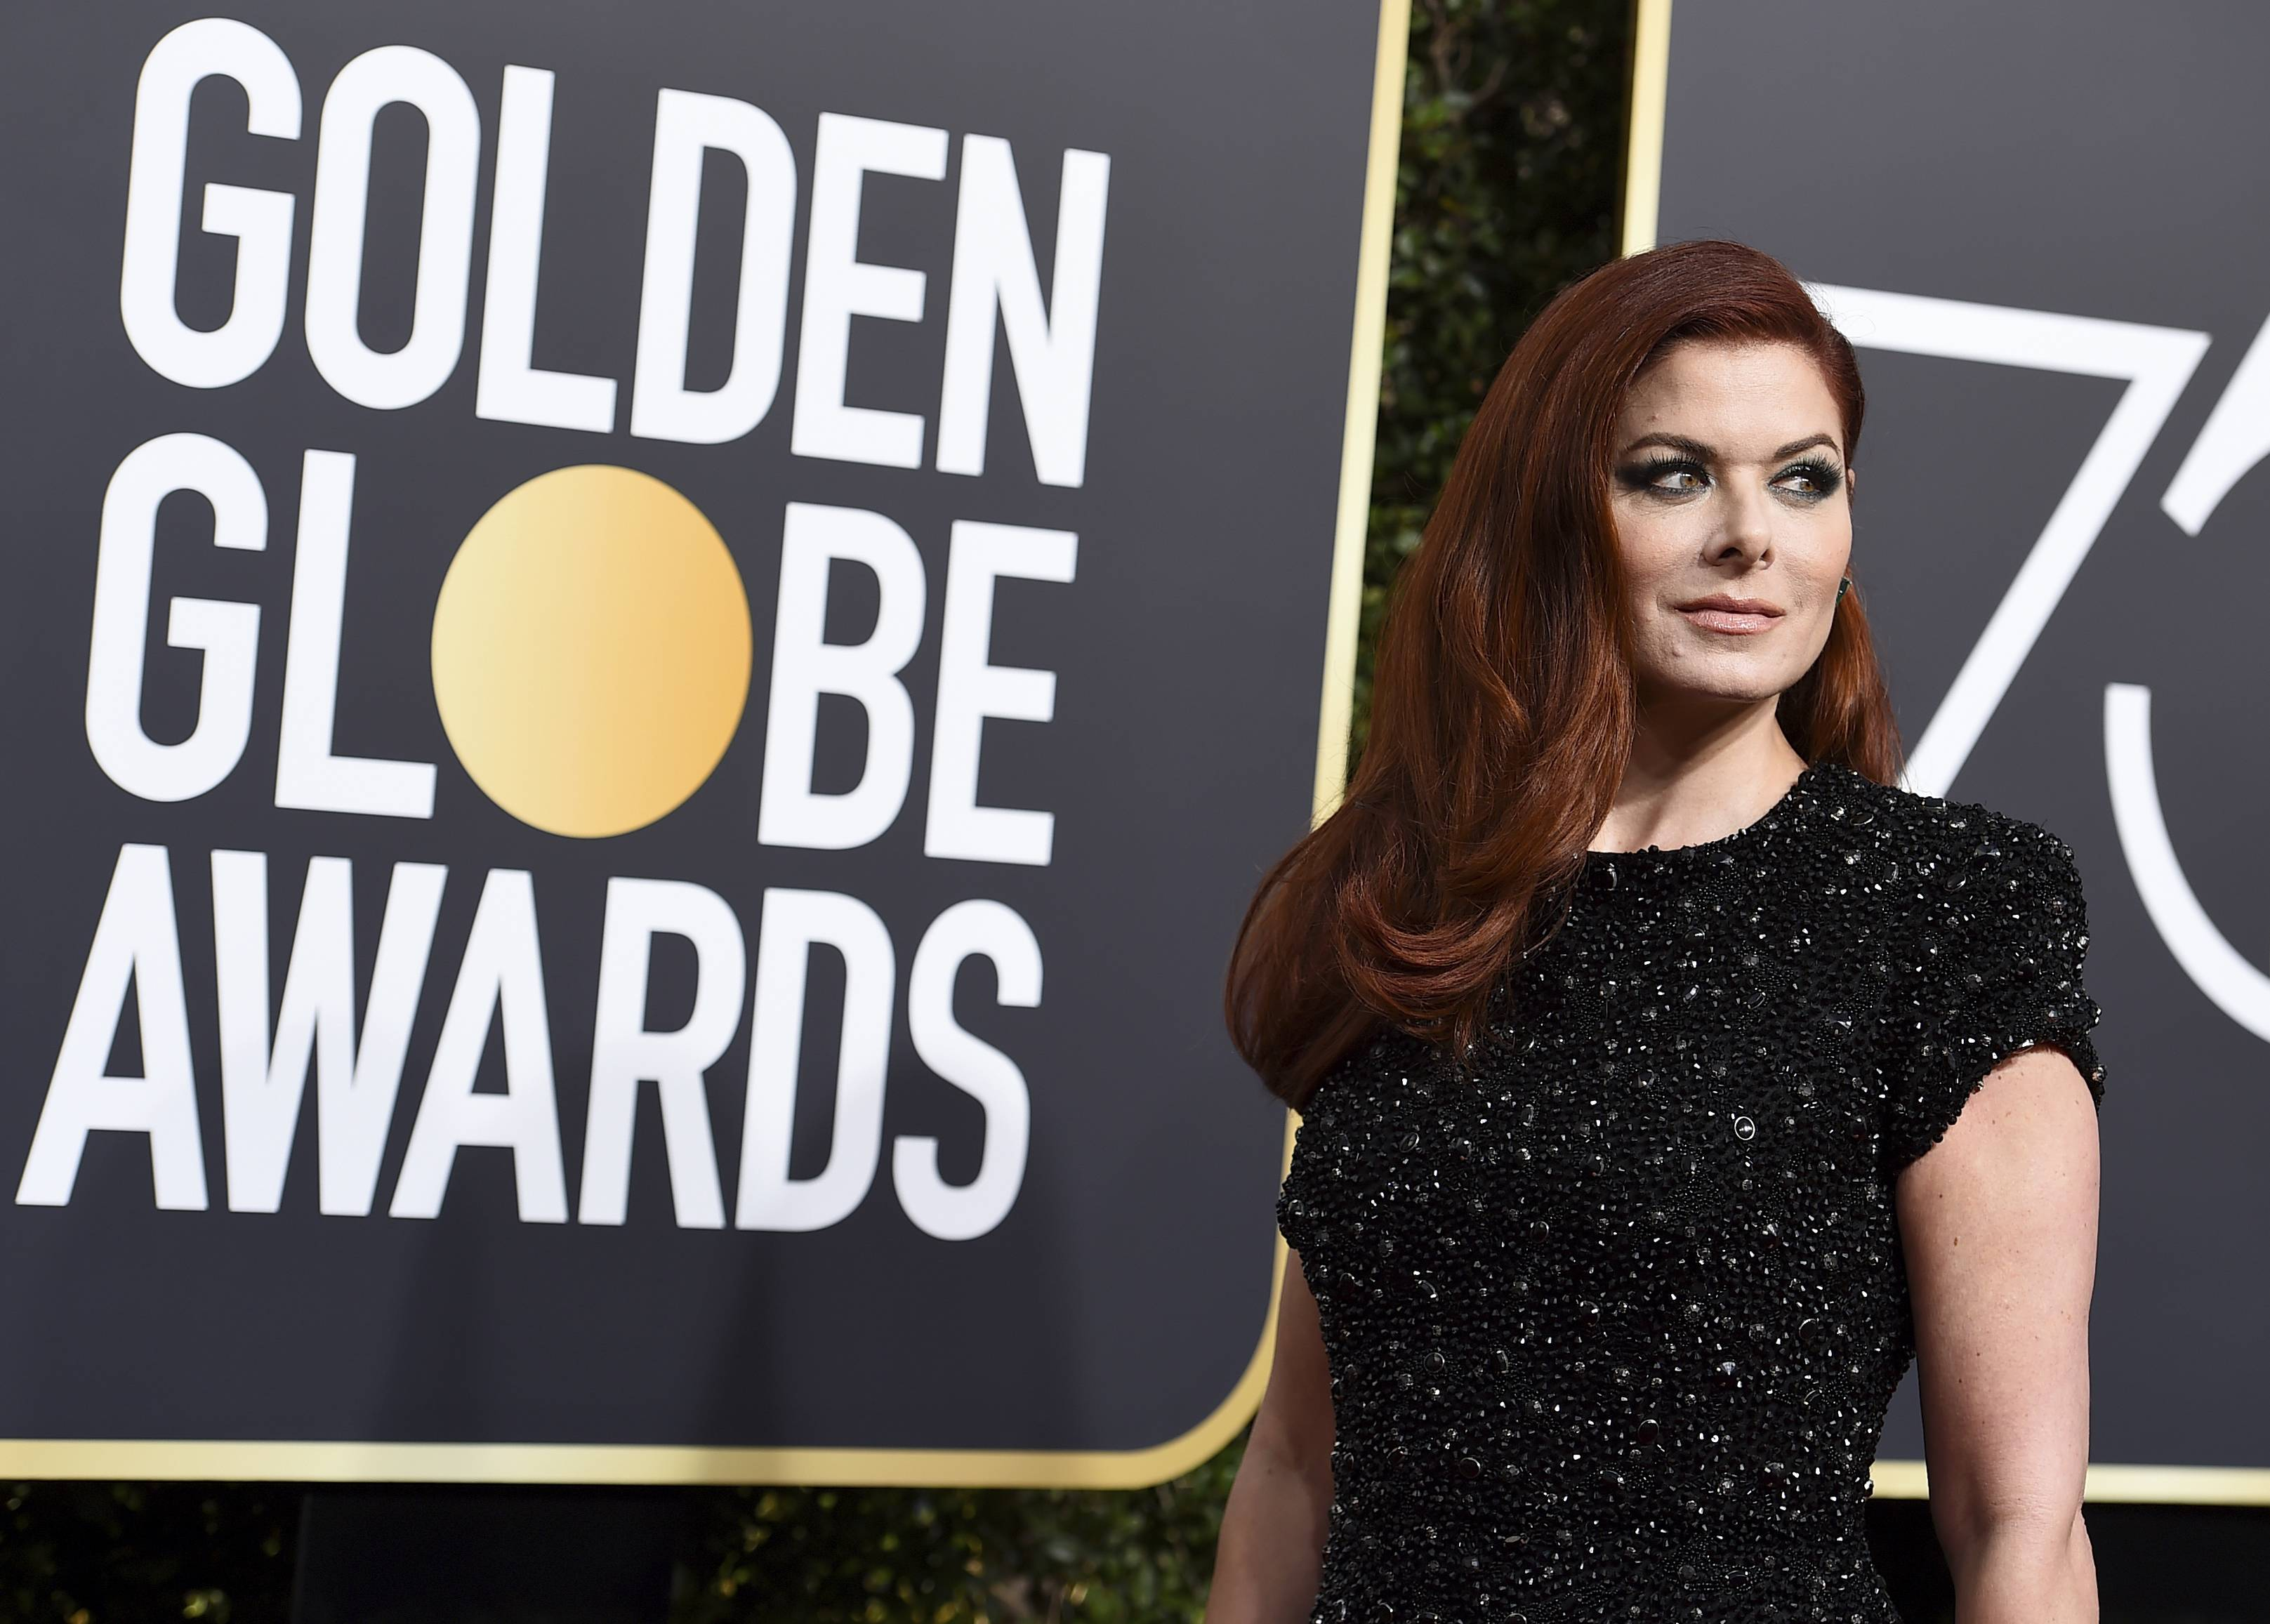 Debra Messing arrives at the 75th annual Golden Globe Awards at the Beverly Hilton Hotel on Sunday.